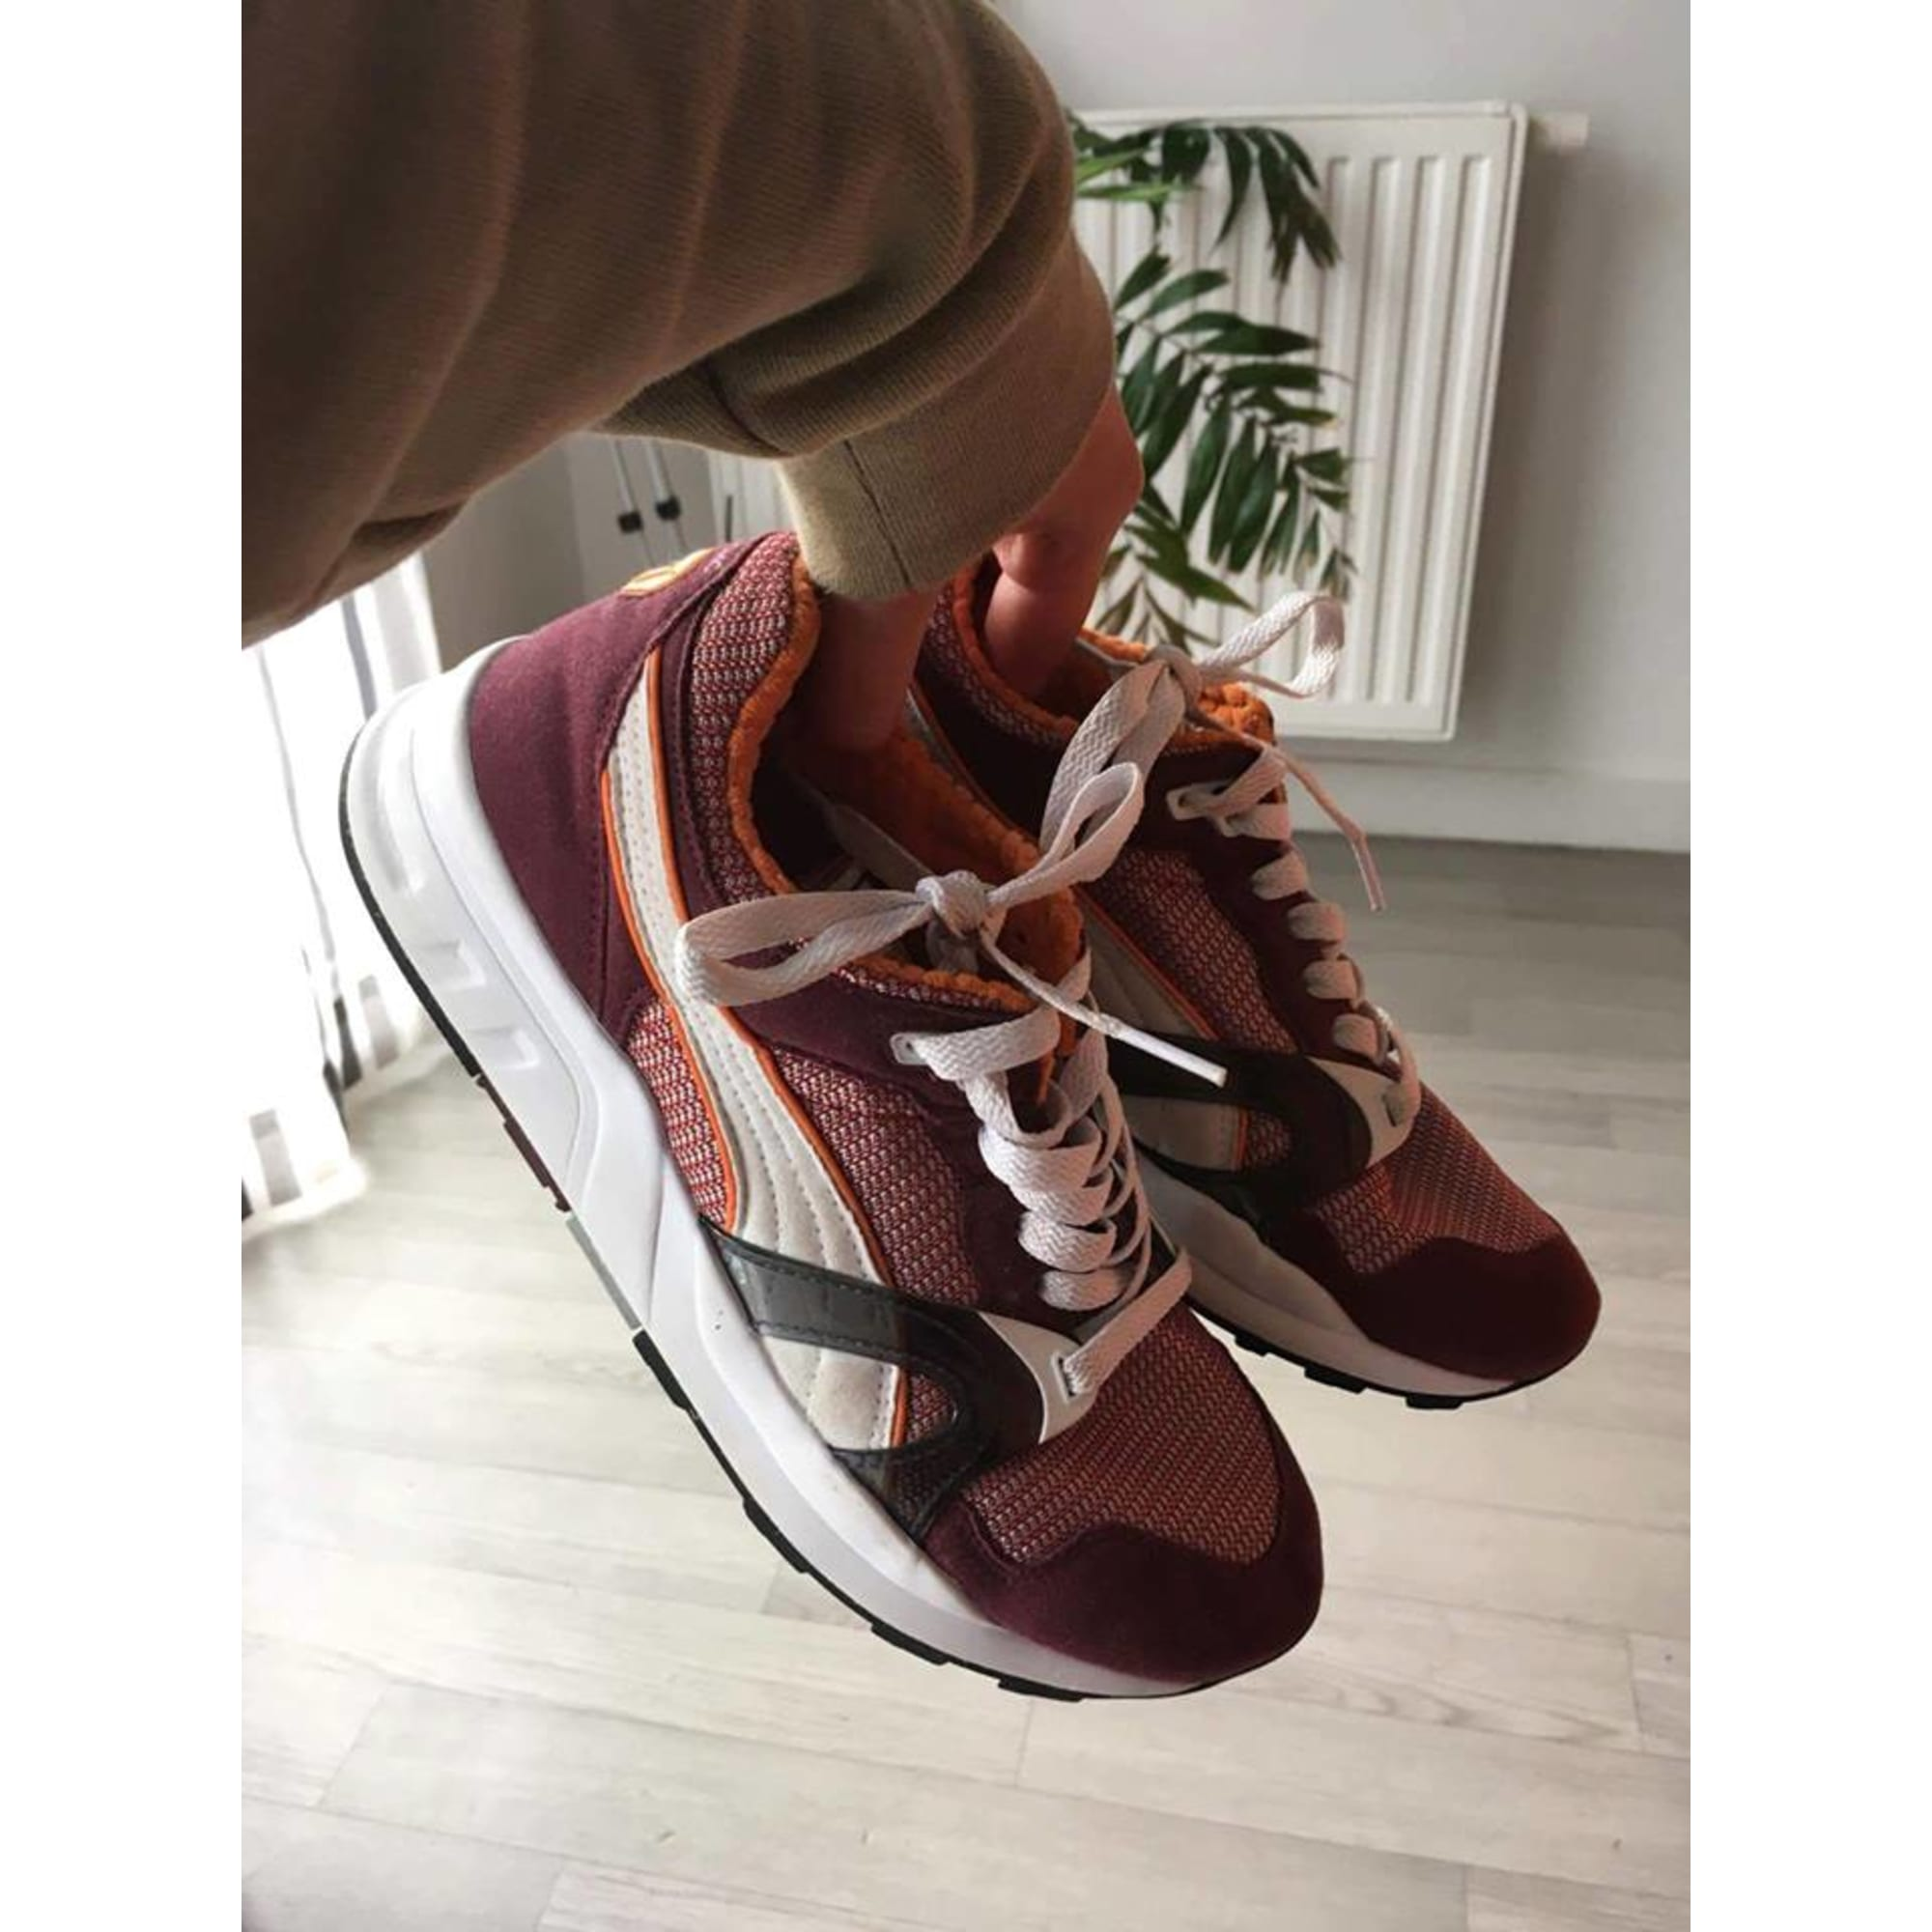 regard détaillé 76961 fbc2c Baskets PUMA TRINOMIC 40 rouge/bordeaux/orange ...